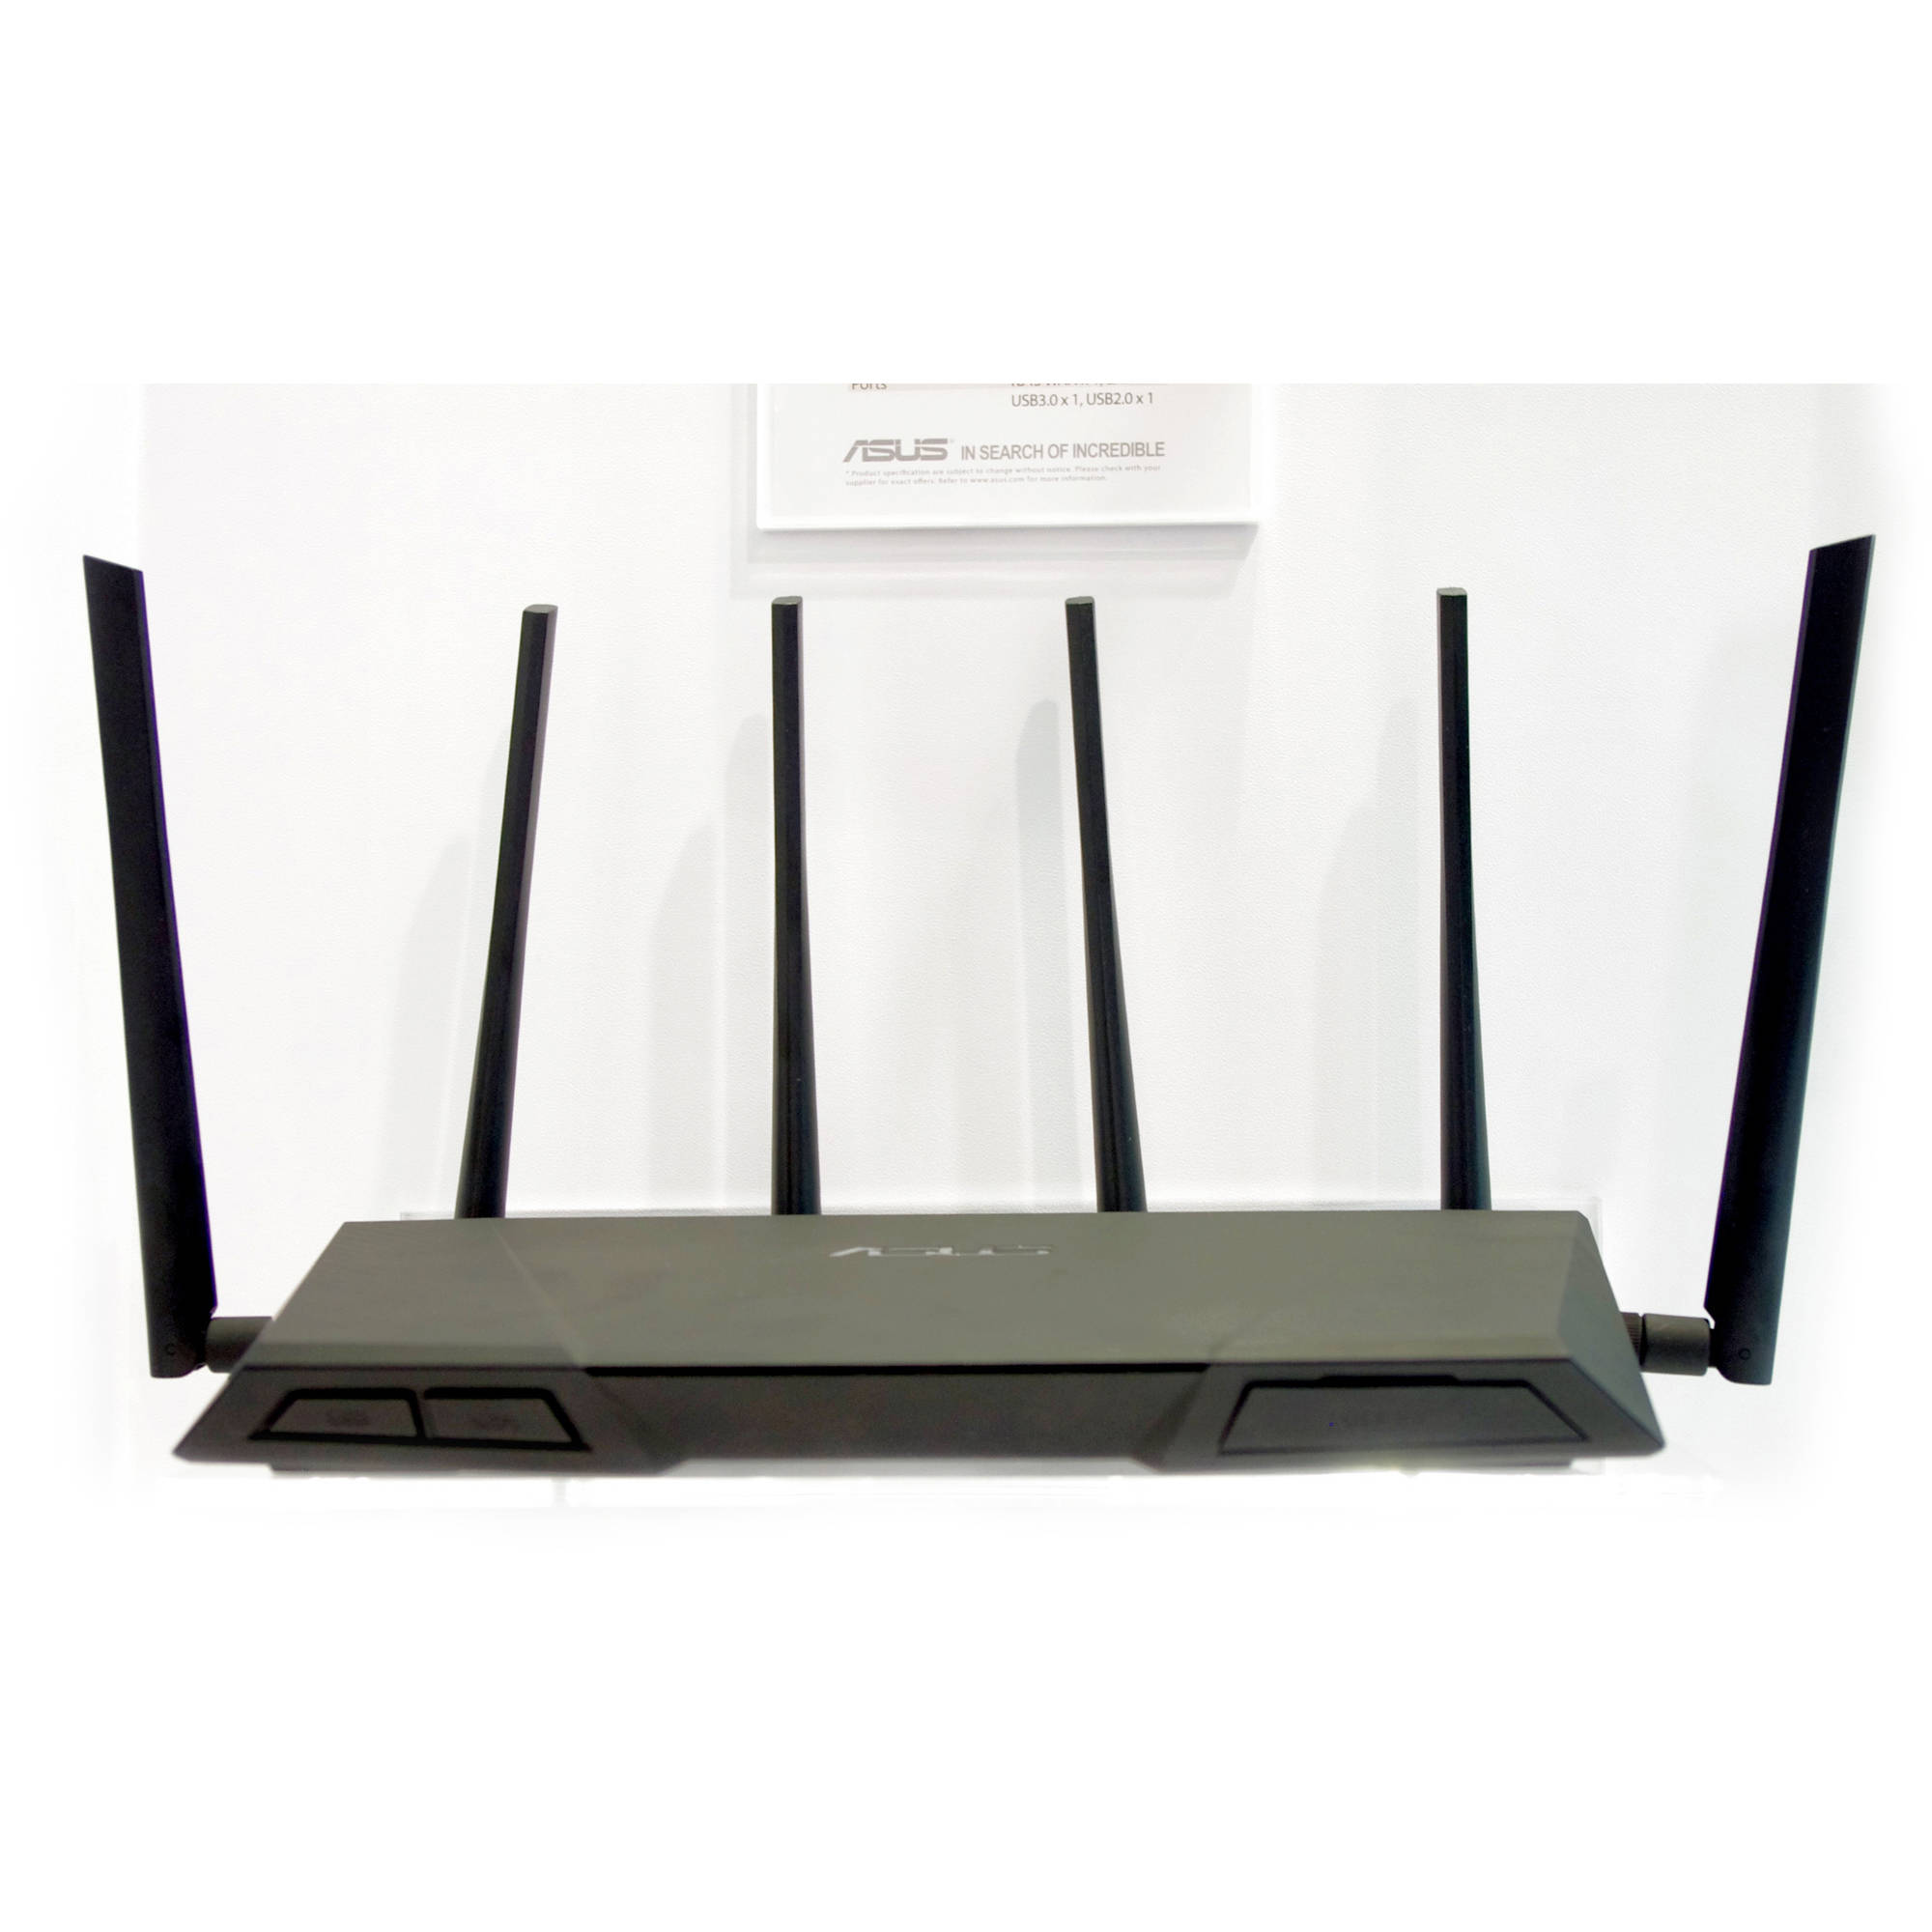 ASUS Tri-Band Wireless-AC3200 Gigabit Router by ASUS